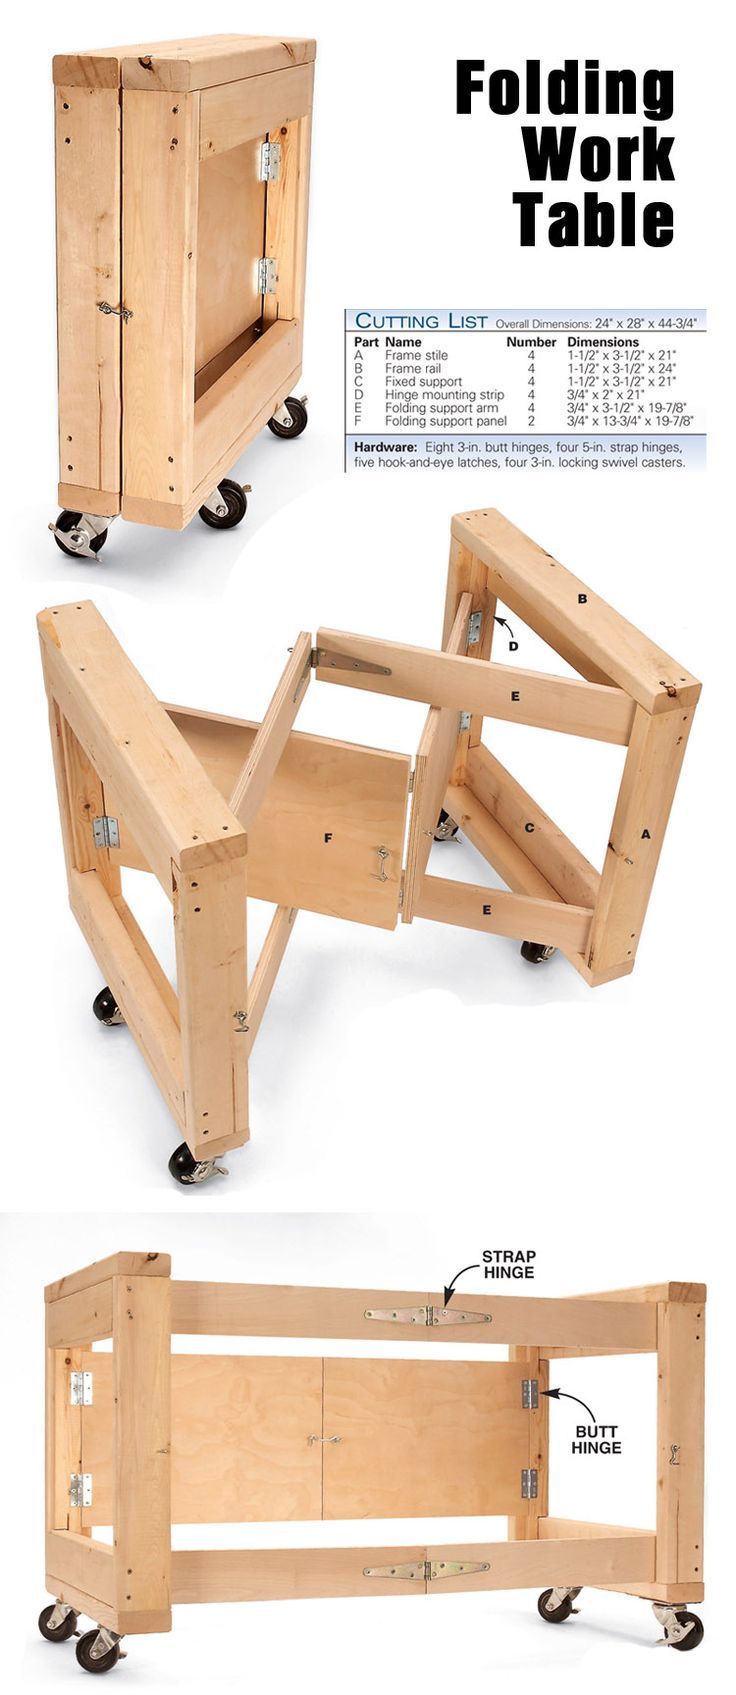 Space Saving Folding Work Table www.popularwoodwo…: